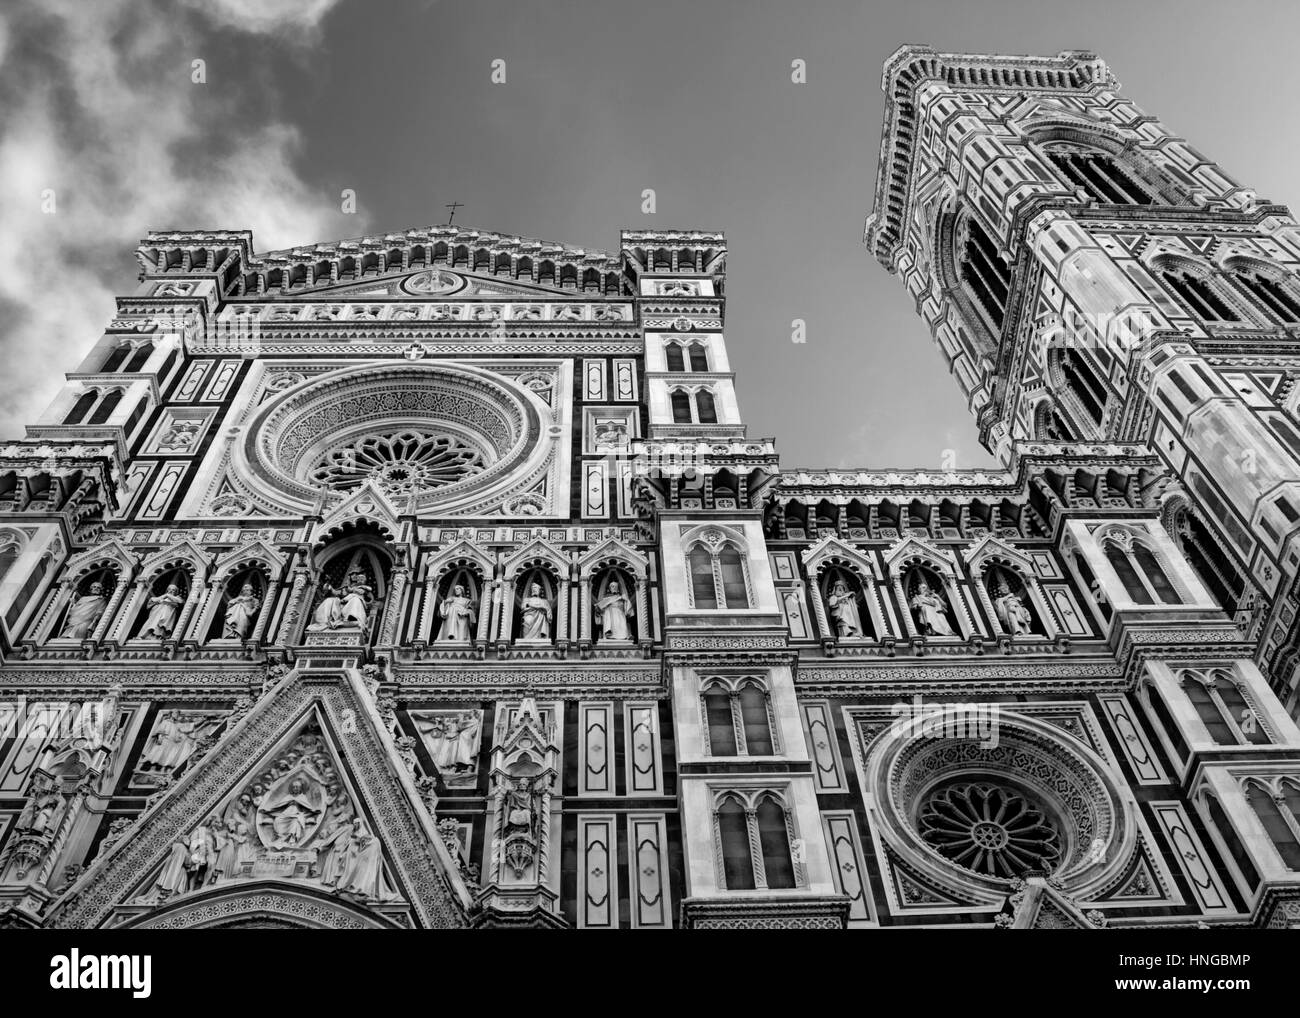 The front of the Duomo in Florence, Italy - Stock Image